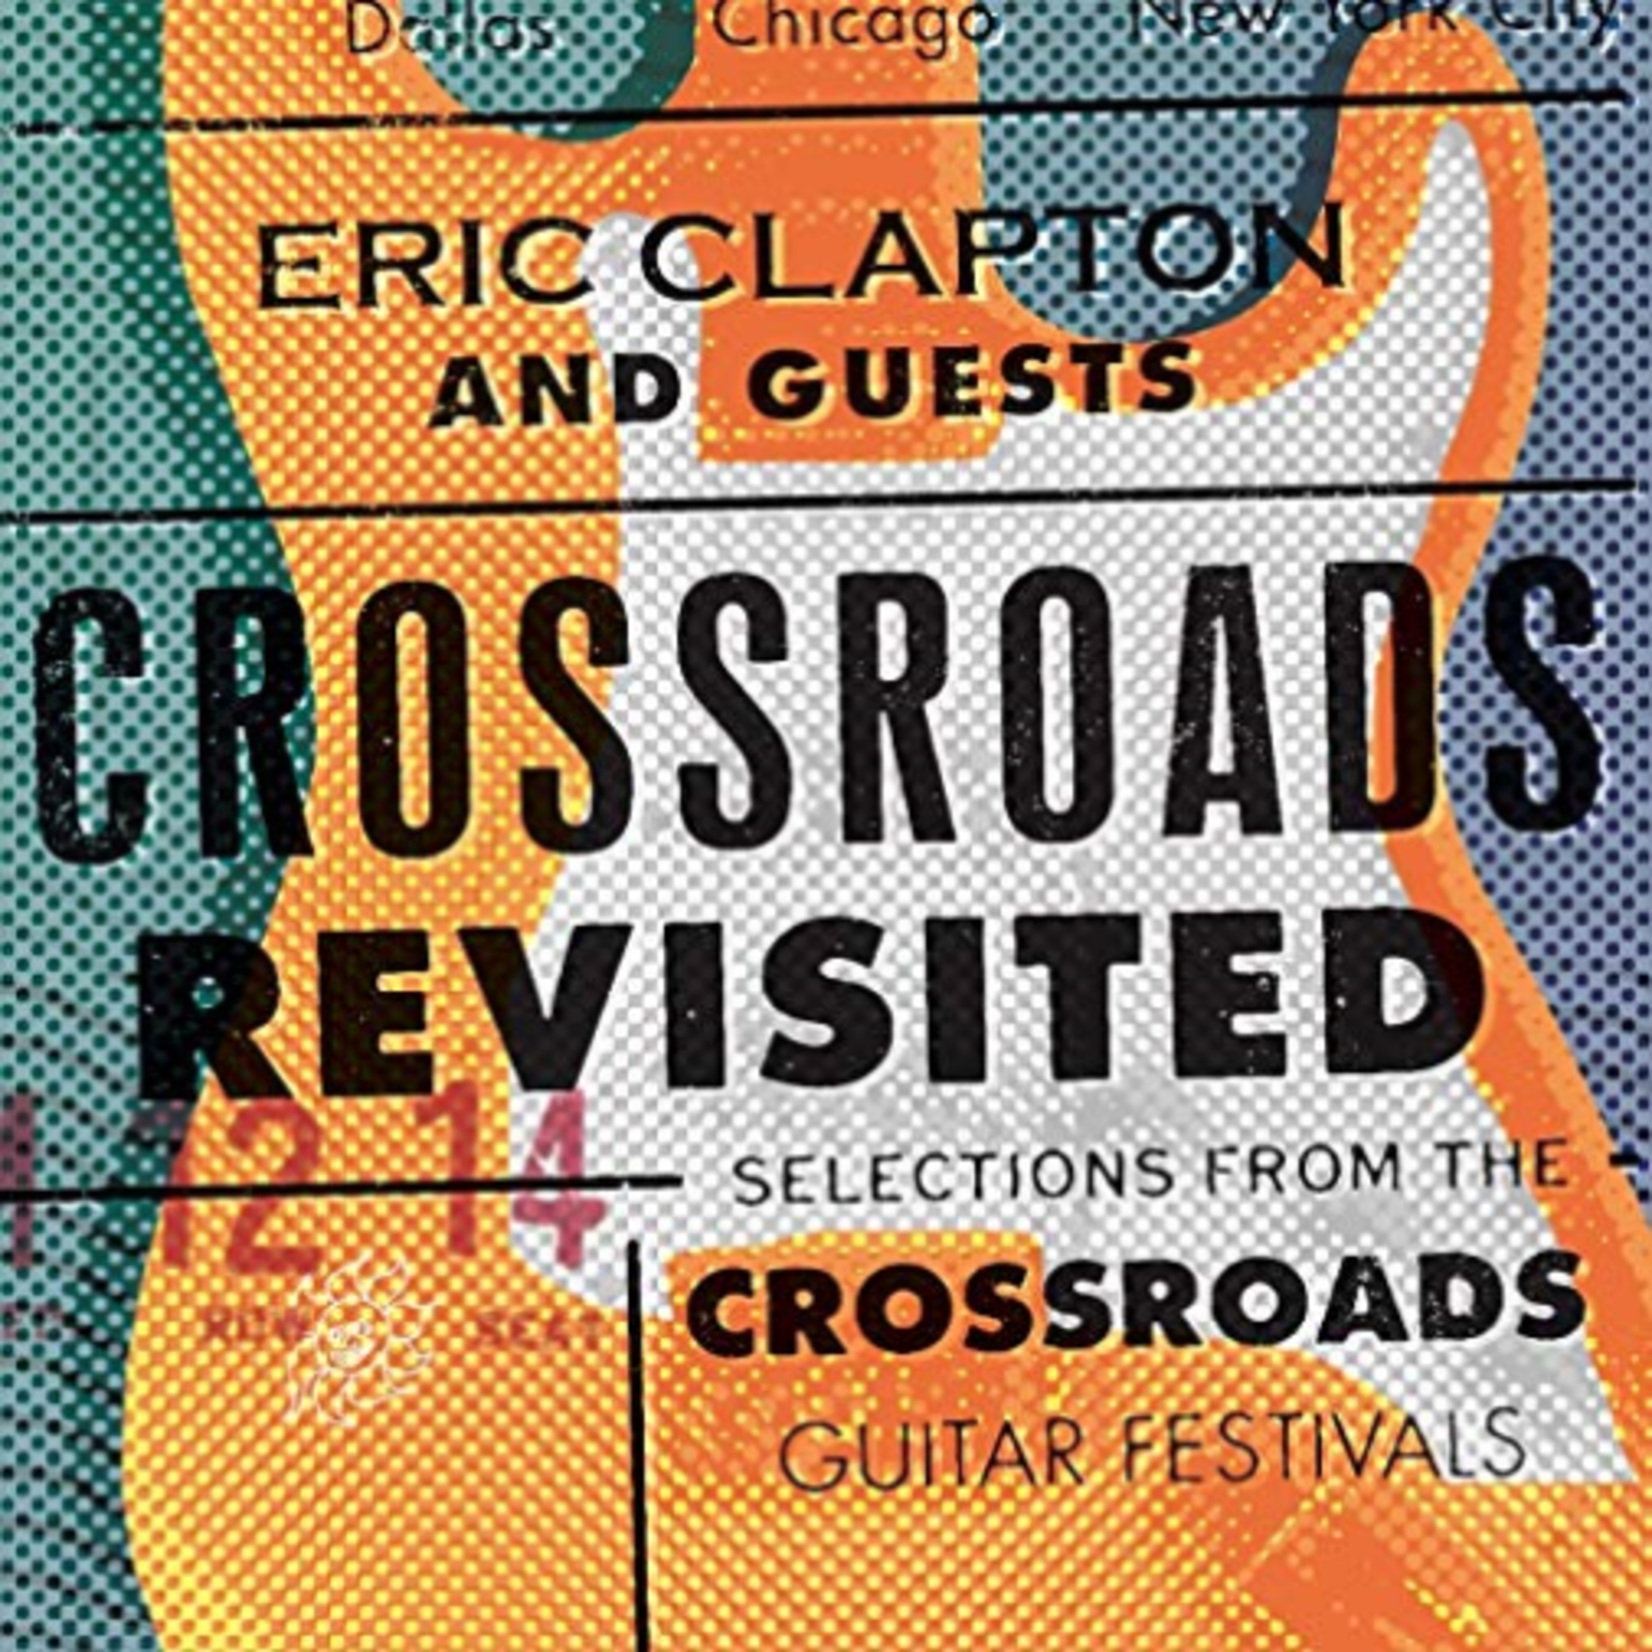 ERIC CLAPTON CROSSROADS REVISITED: SELECTIONS FROM THE GUITAR FESTIVALS (6 LP)